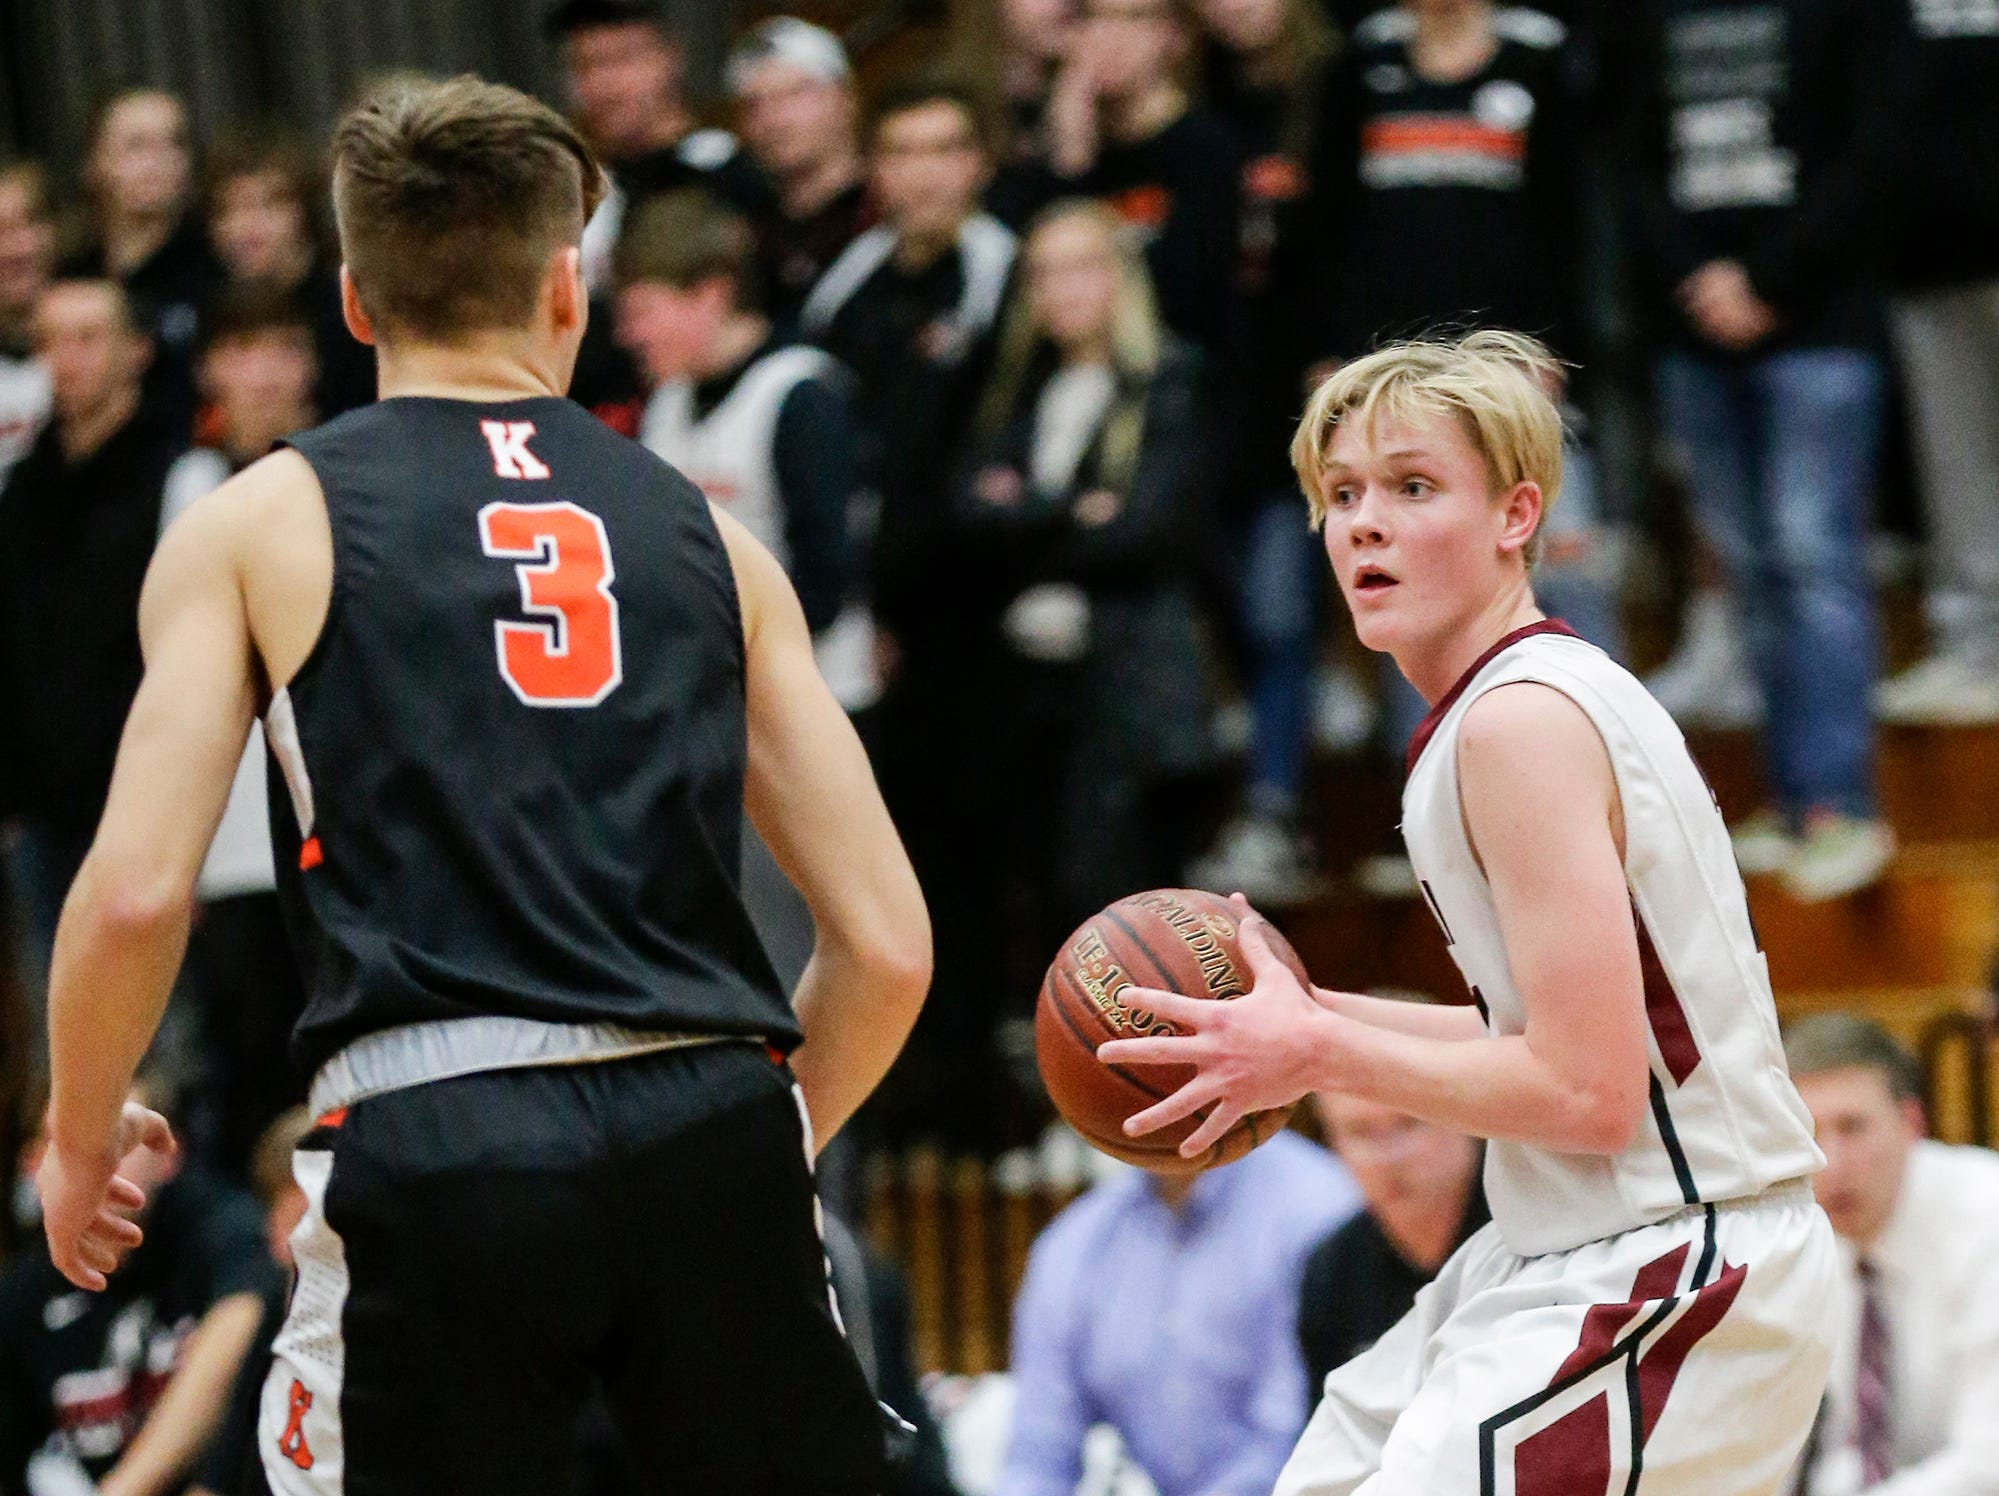 Fond du Lac High School boys basketball's Sam Nielsen looks to pass the ball against Kaukauna High School during their game Tuesday, November 27, 2018 in Fond du Lac. Doug Raflik/USA TODAY NETWORK-Wisconsin